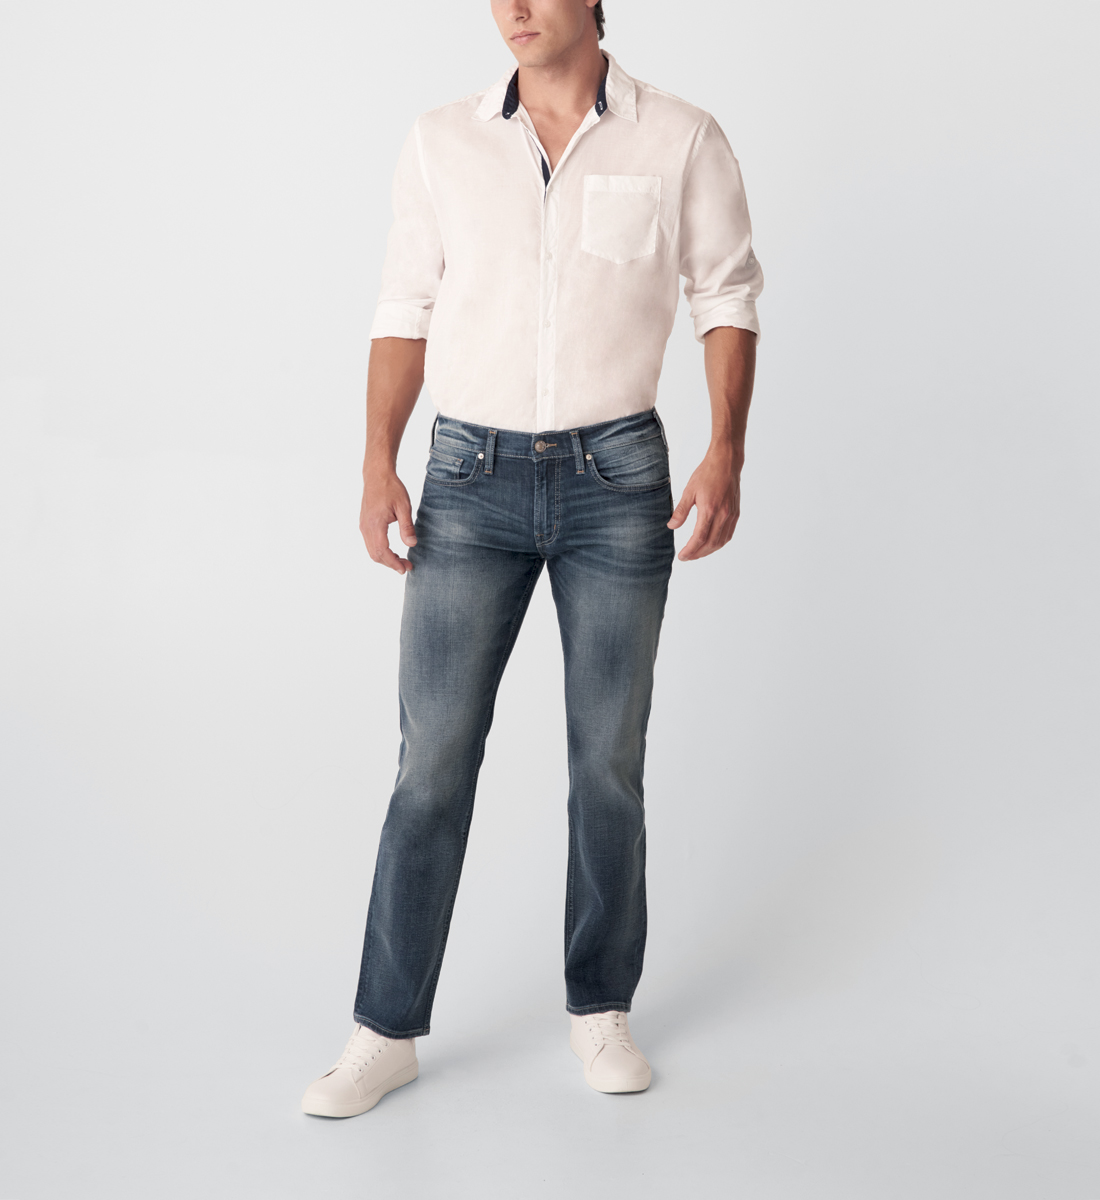 Silver Jeans Allan Classic Fit Straight Leg Jeans